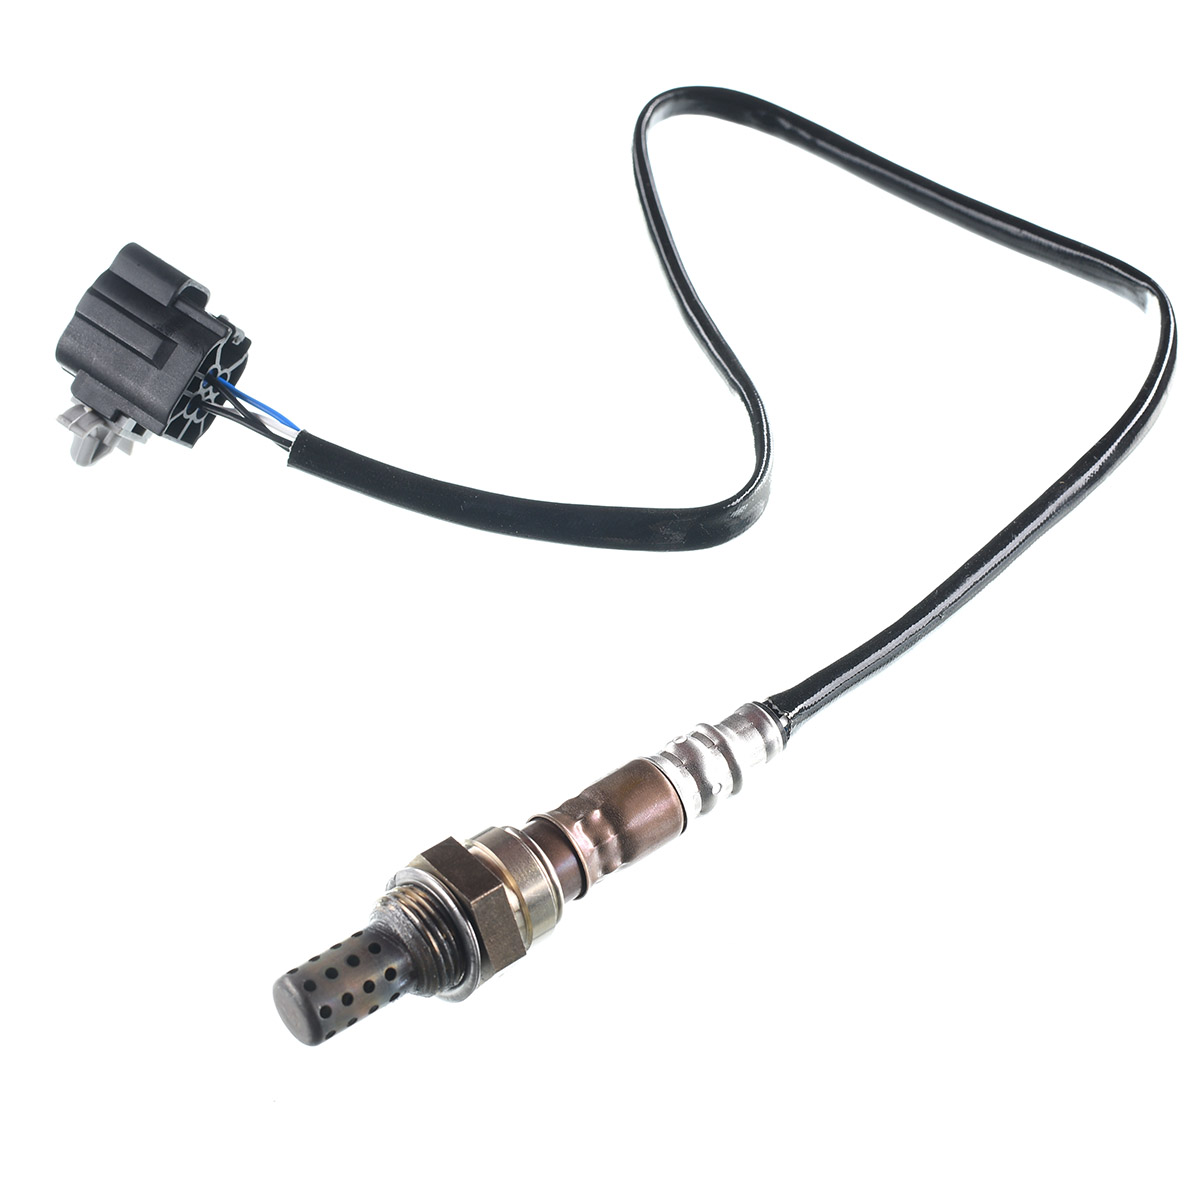 Premium O2 Oxygen Sensor for Mazda MX-5 Miata Upstream